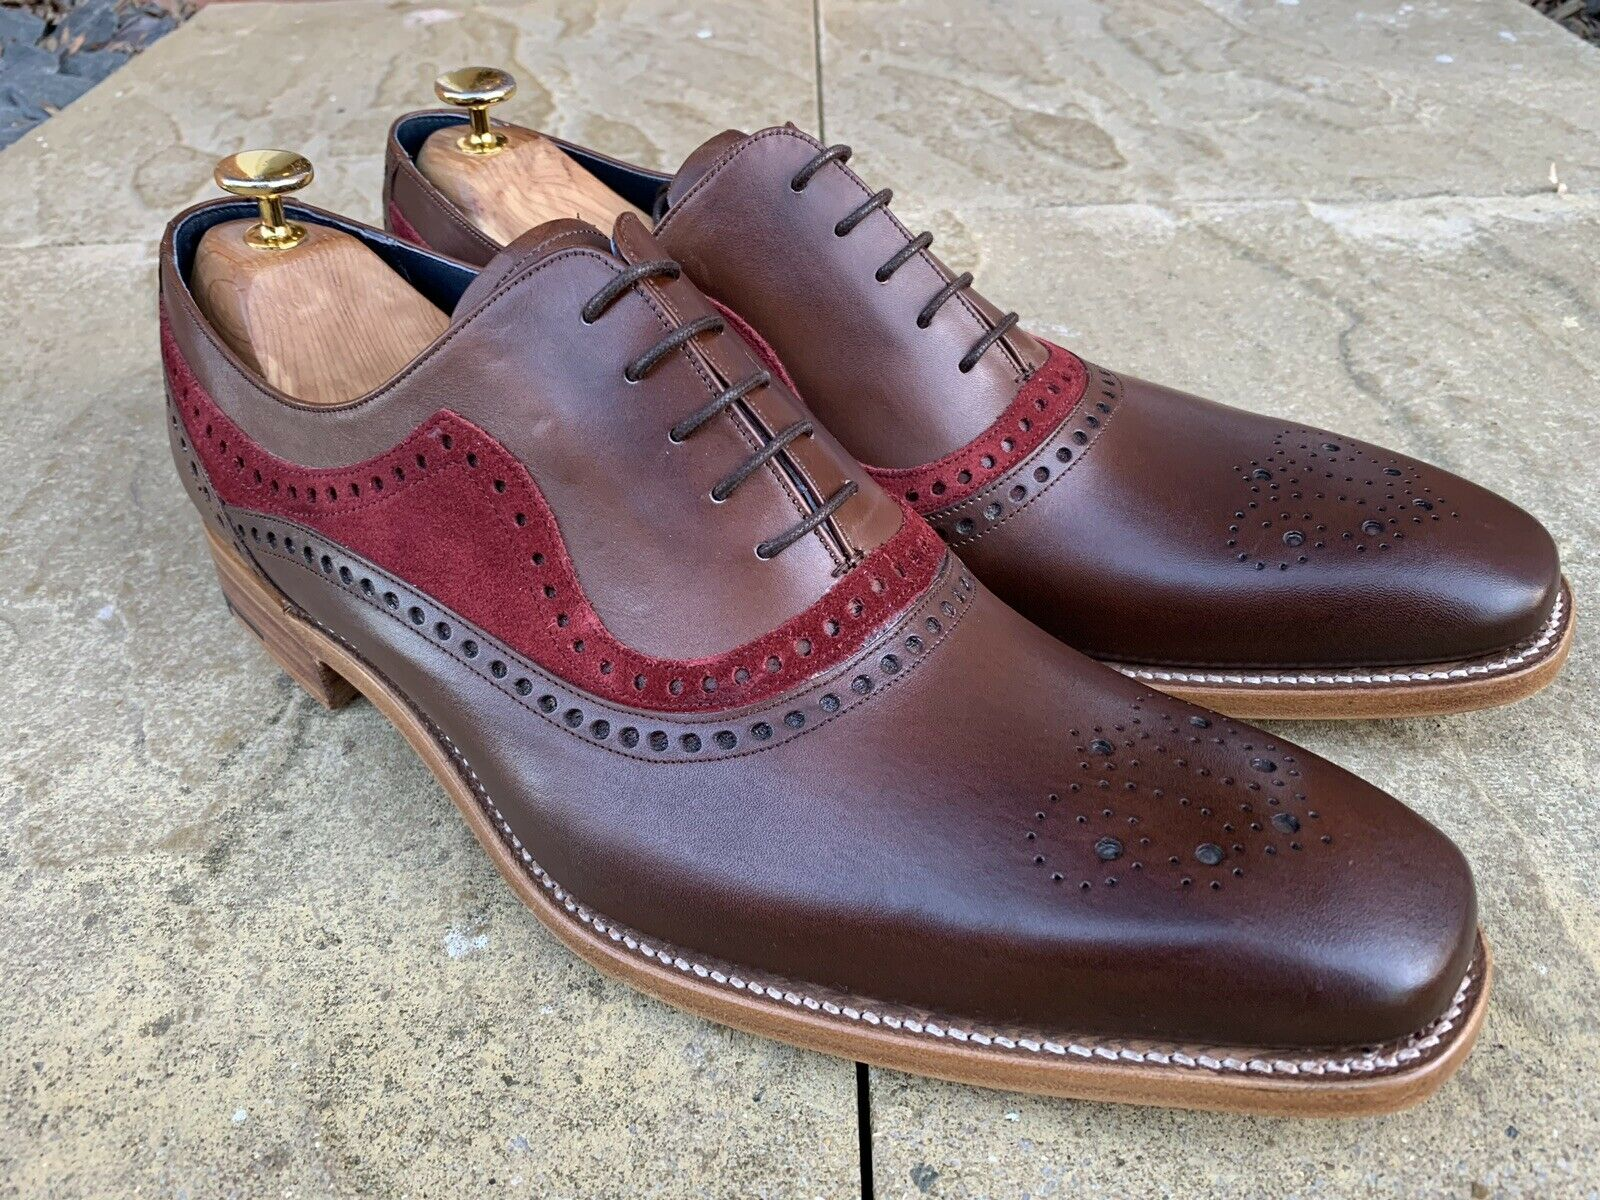 Barker Brandon Brogue Zapatos Nogal Burg Pantorrilla UK 11 nos 12 Ganga